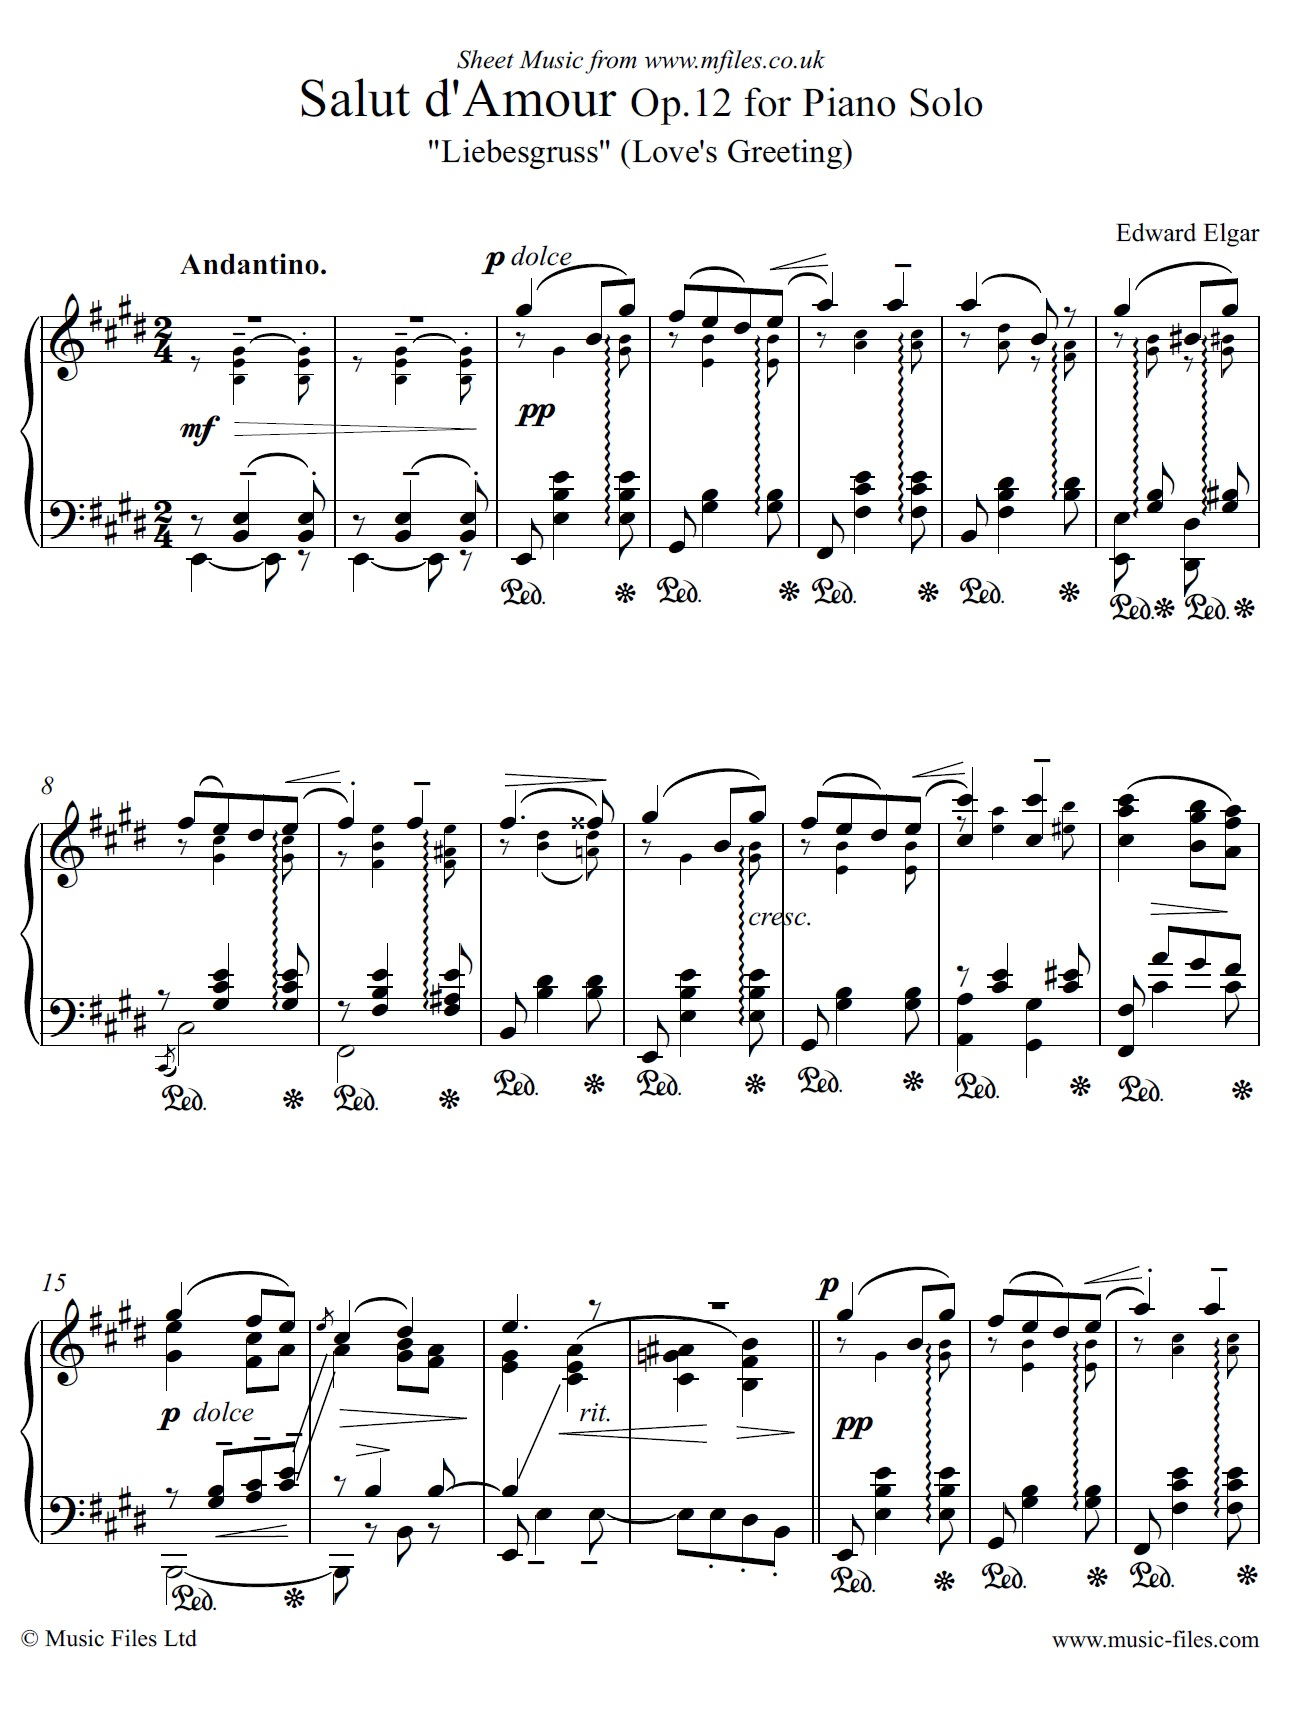 Elgar's Salut d'Amour Op.12 for piano solo - sheet music 1st page